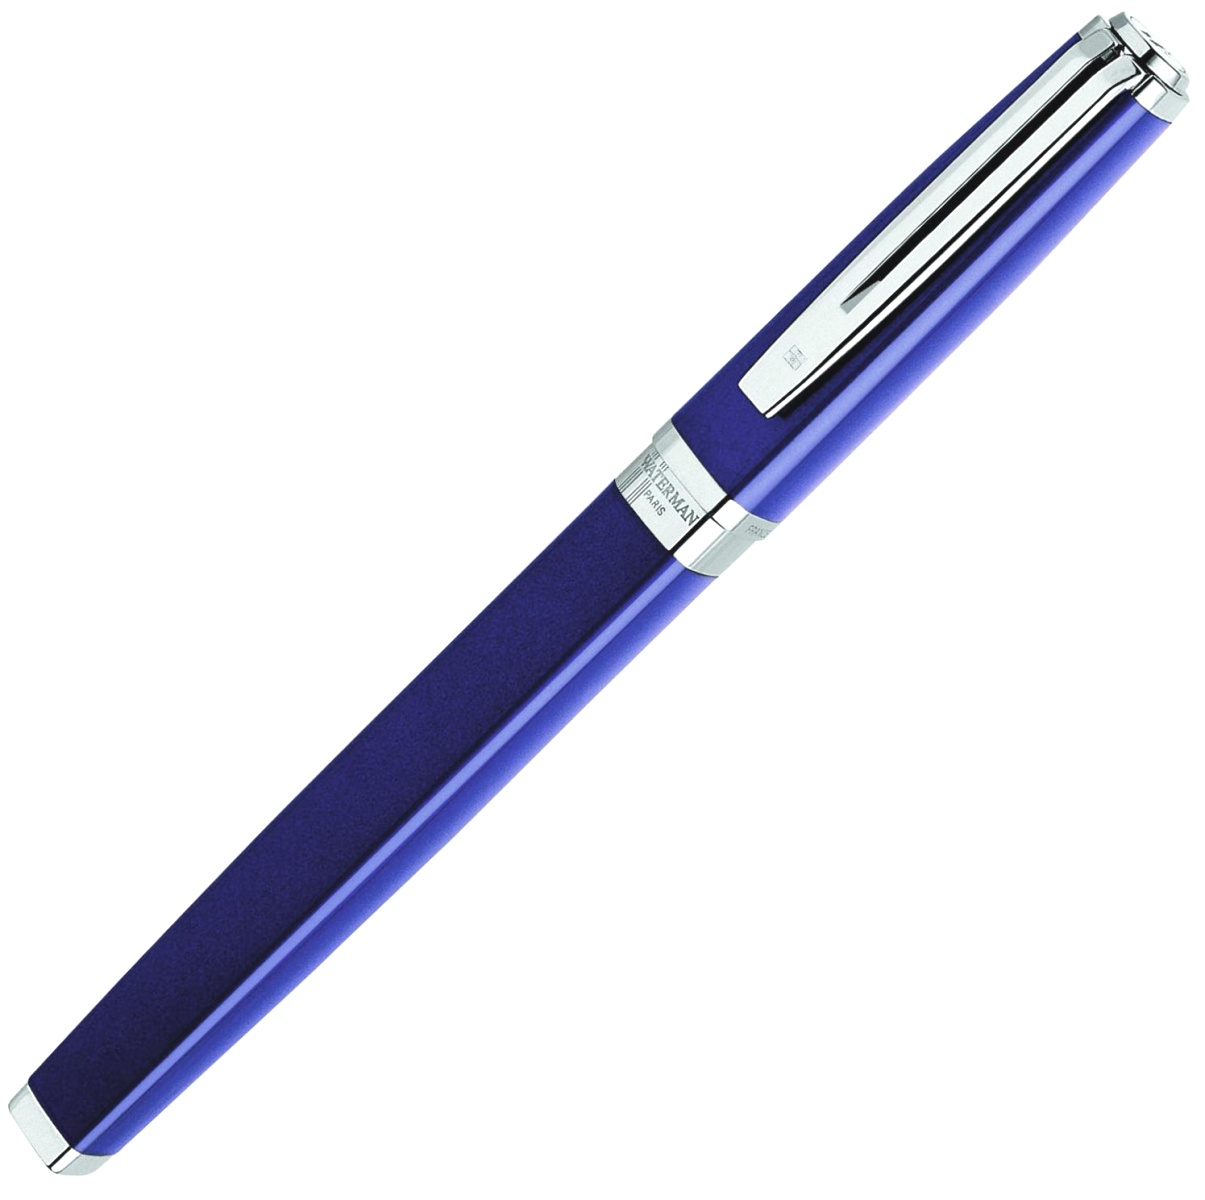 Ручка-роллер Waterman Exception Slim, Blue Lacquer ST, фото 2